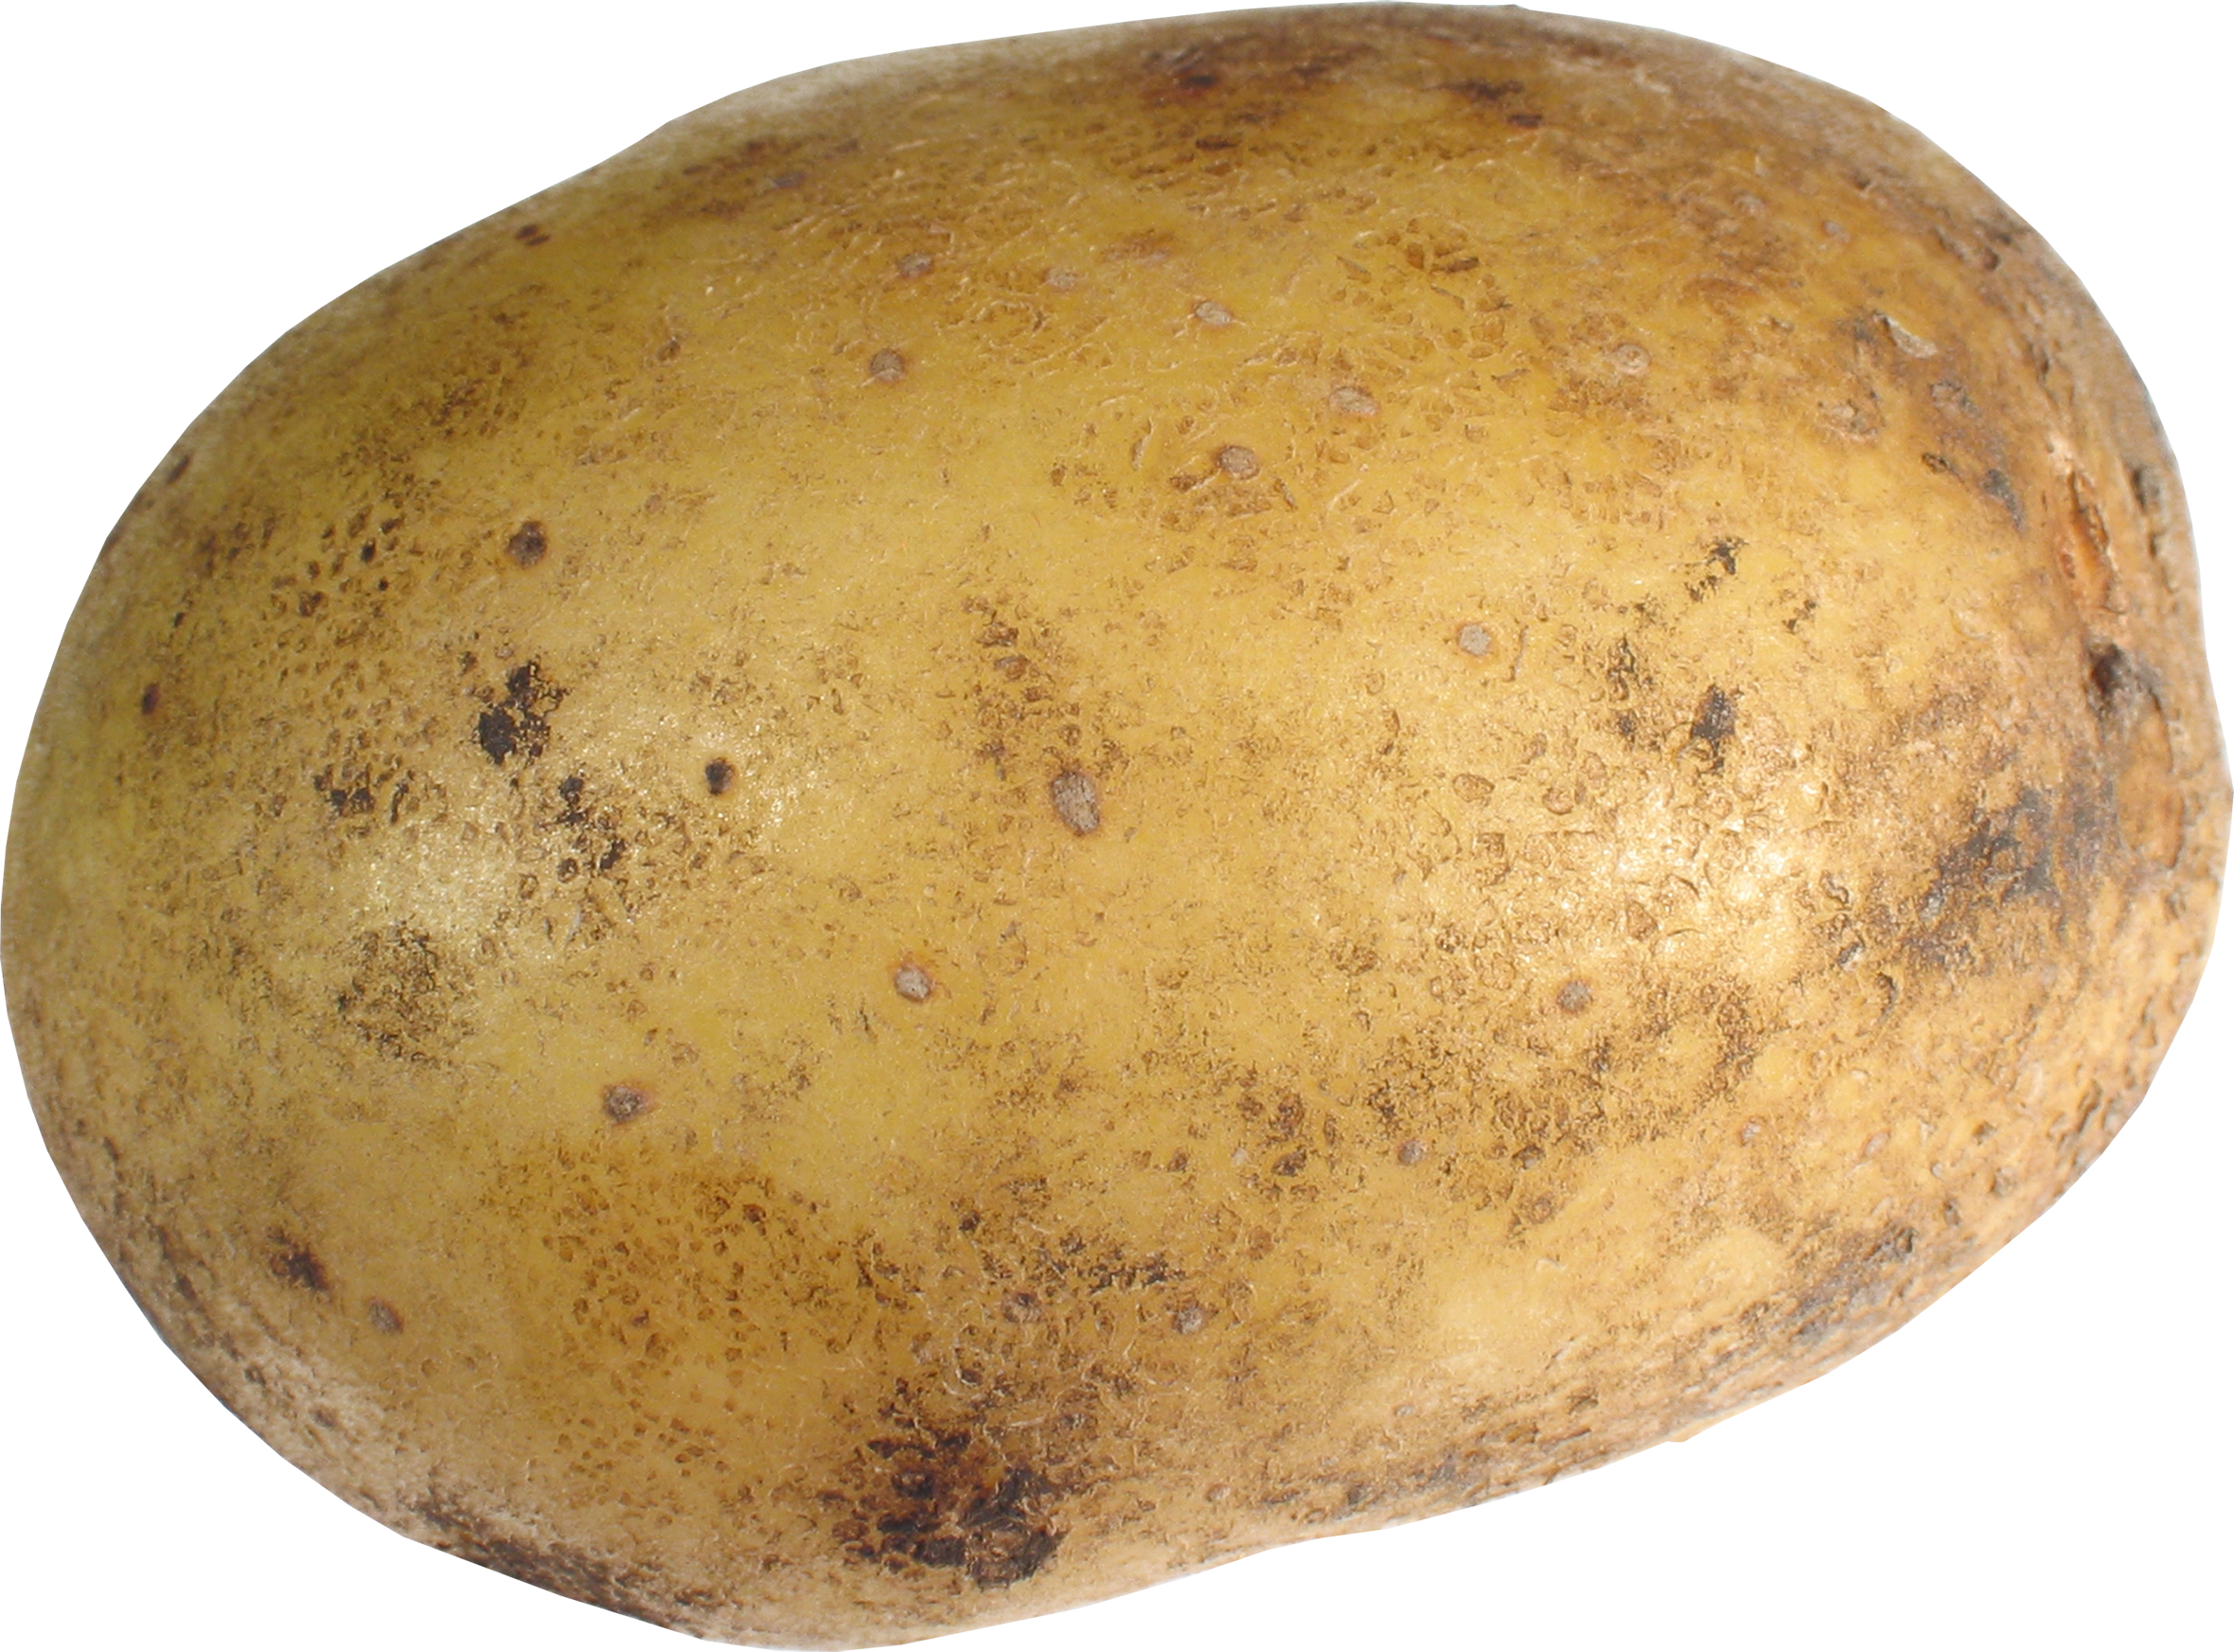 Potato png images - Potato HD PNG